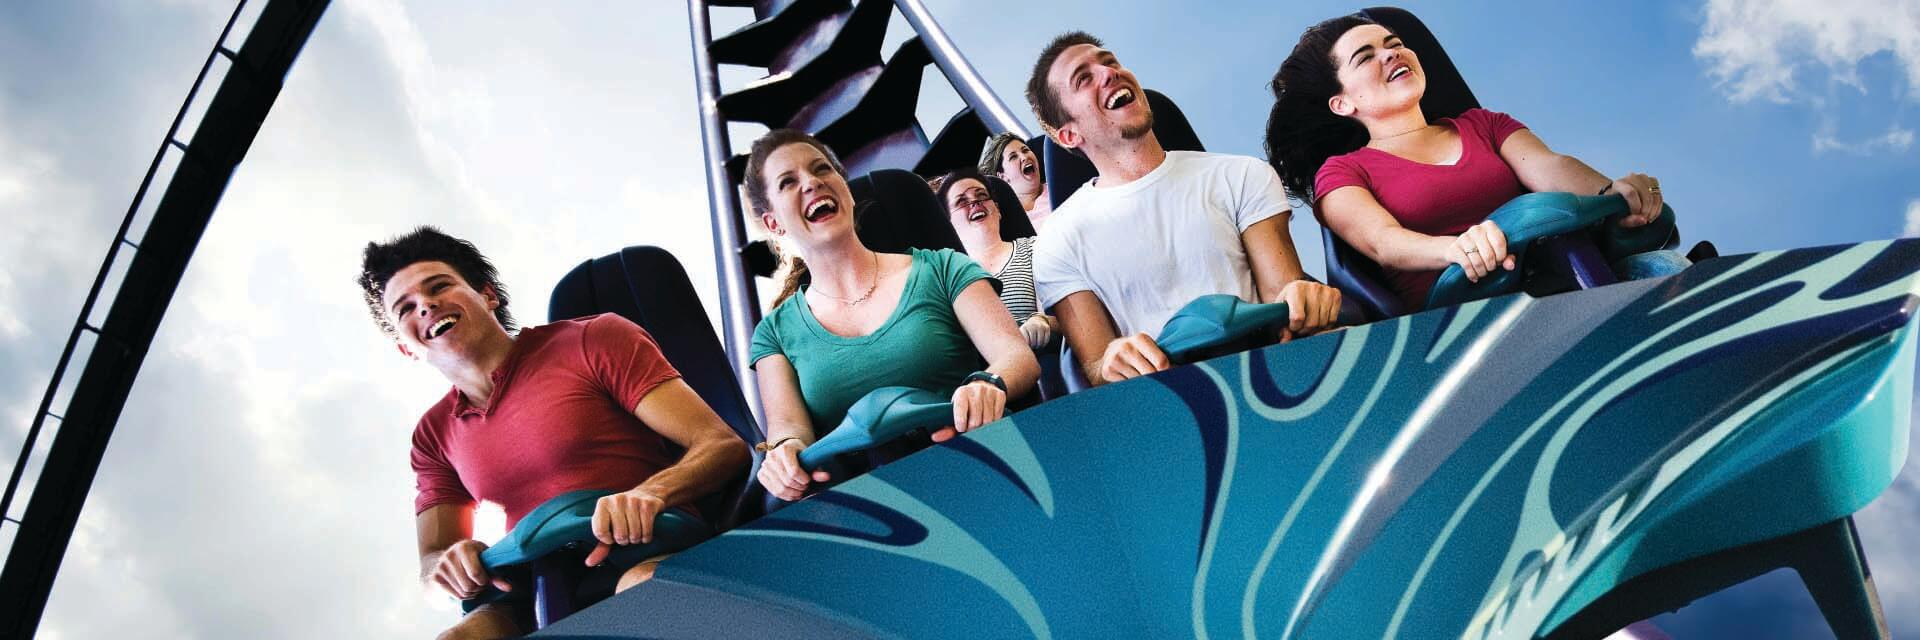 Skip The Lines With Seaworld Quick Queue Floridatix